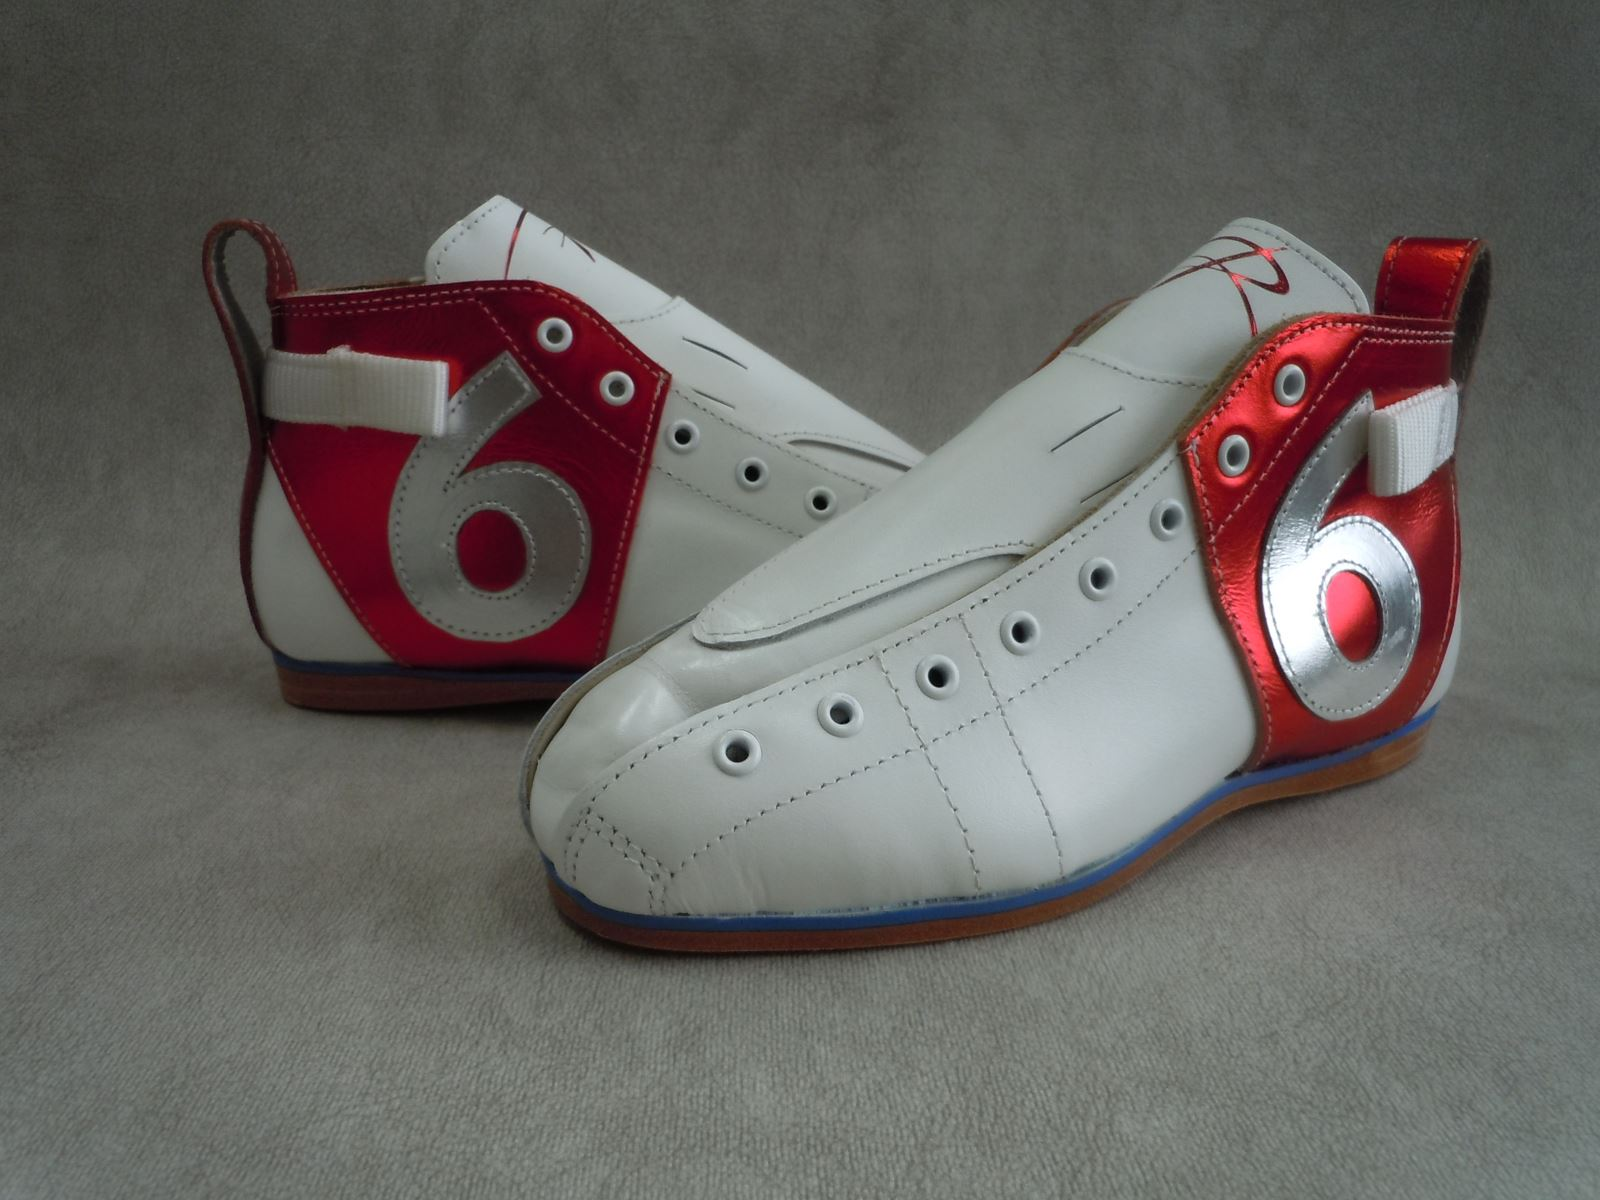 Riedell Superstar Wild Cherri's Custom Boots - White and Red Metallic Leather with Custom Decal and Number on the sides of the boots